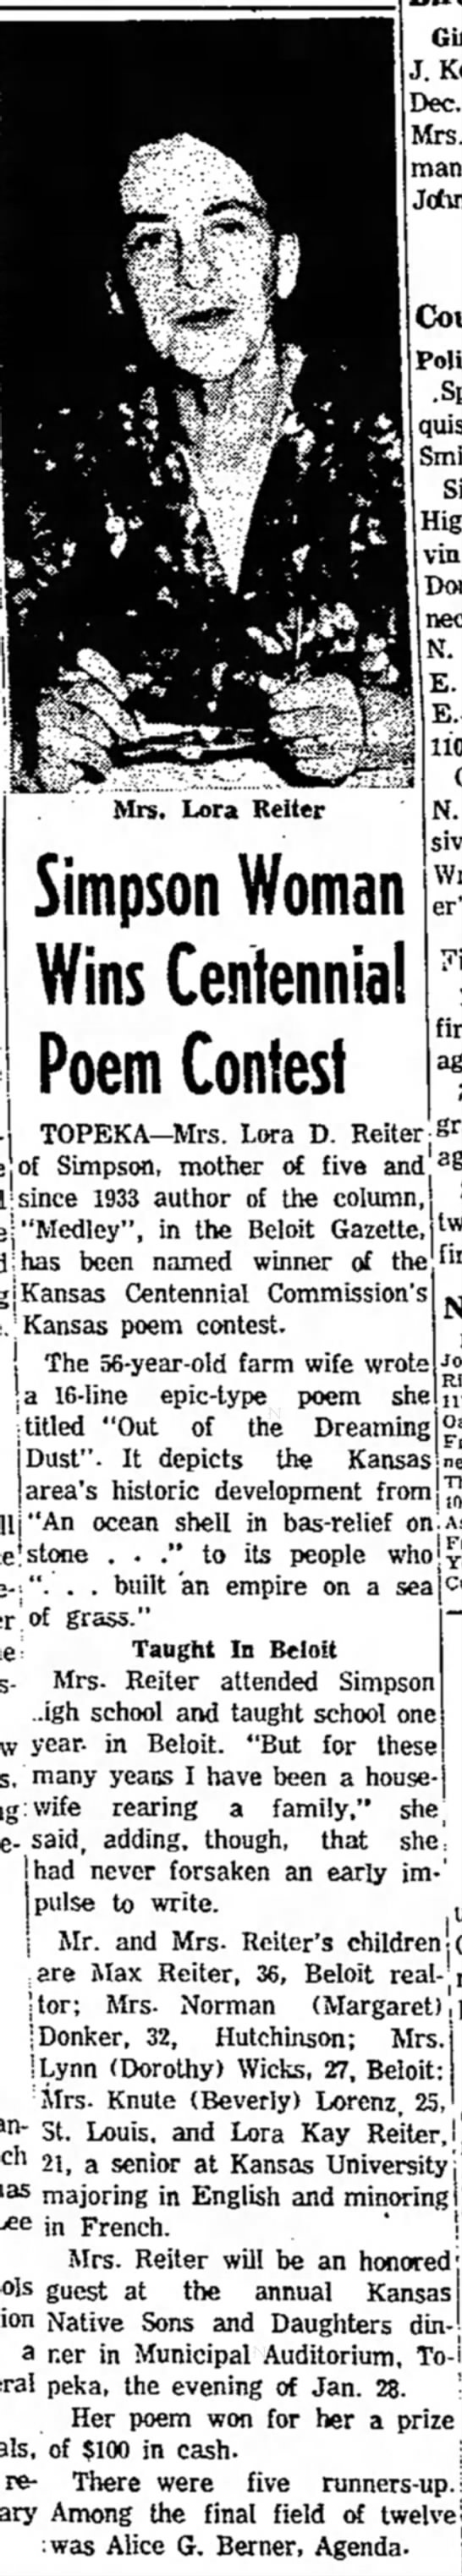 Lora Reiter wins Poetry contest Salina Journal 25 Dec 1960 -